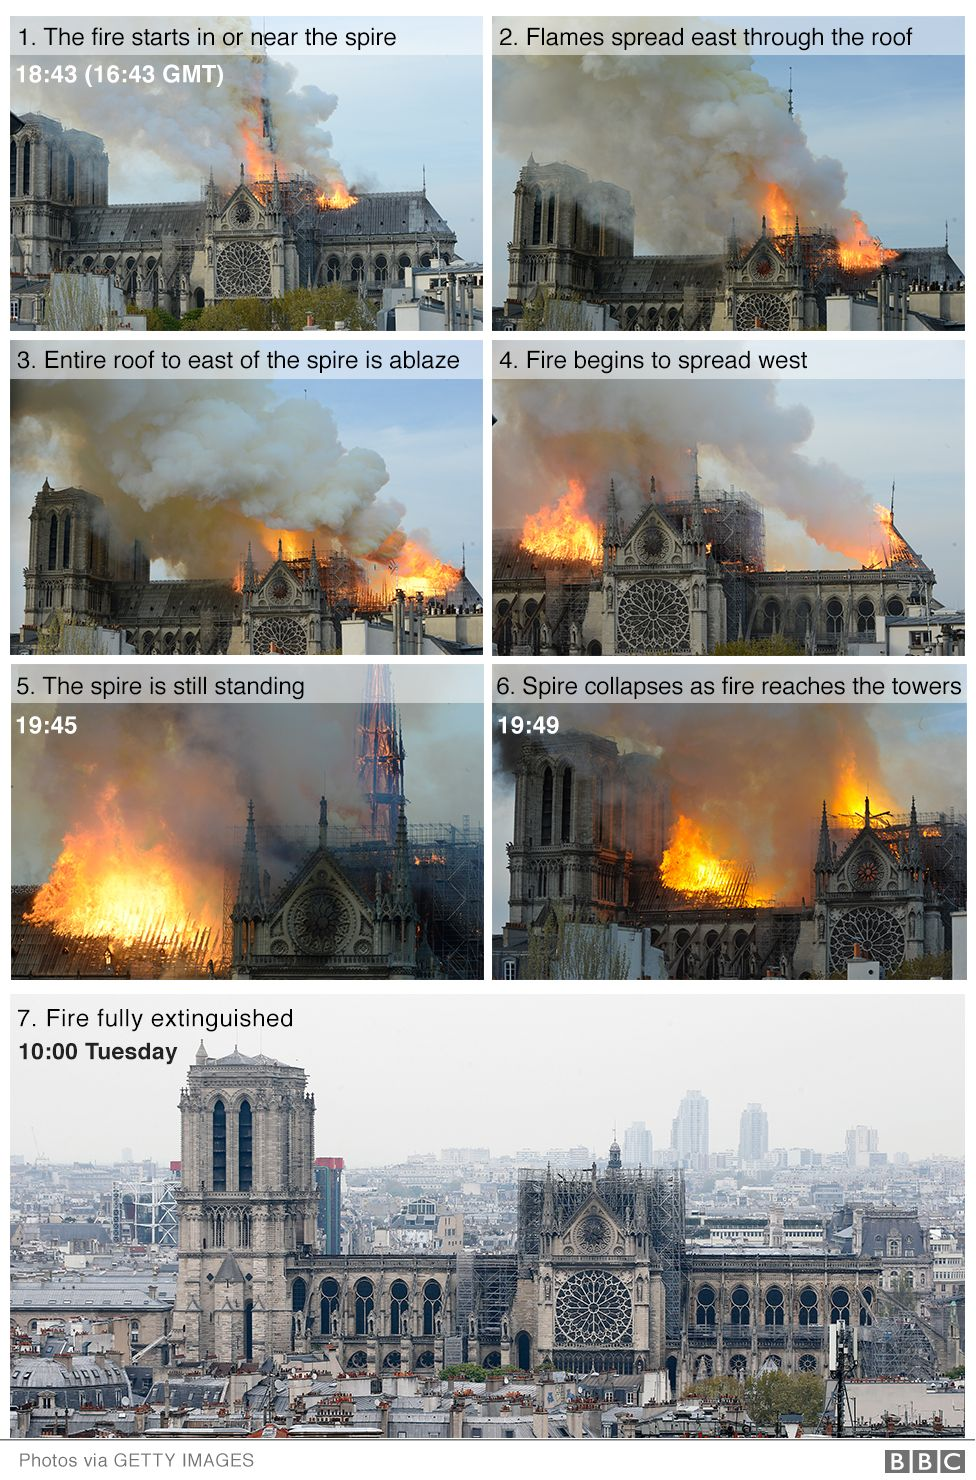 Images showing how the fire spread